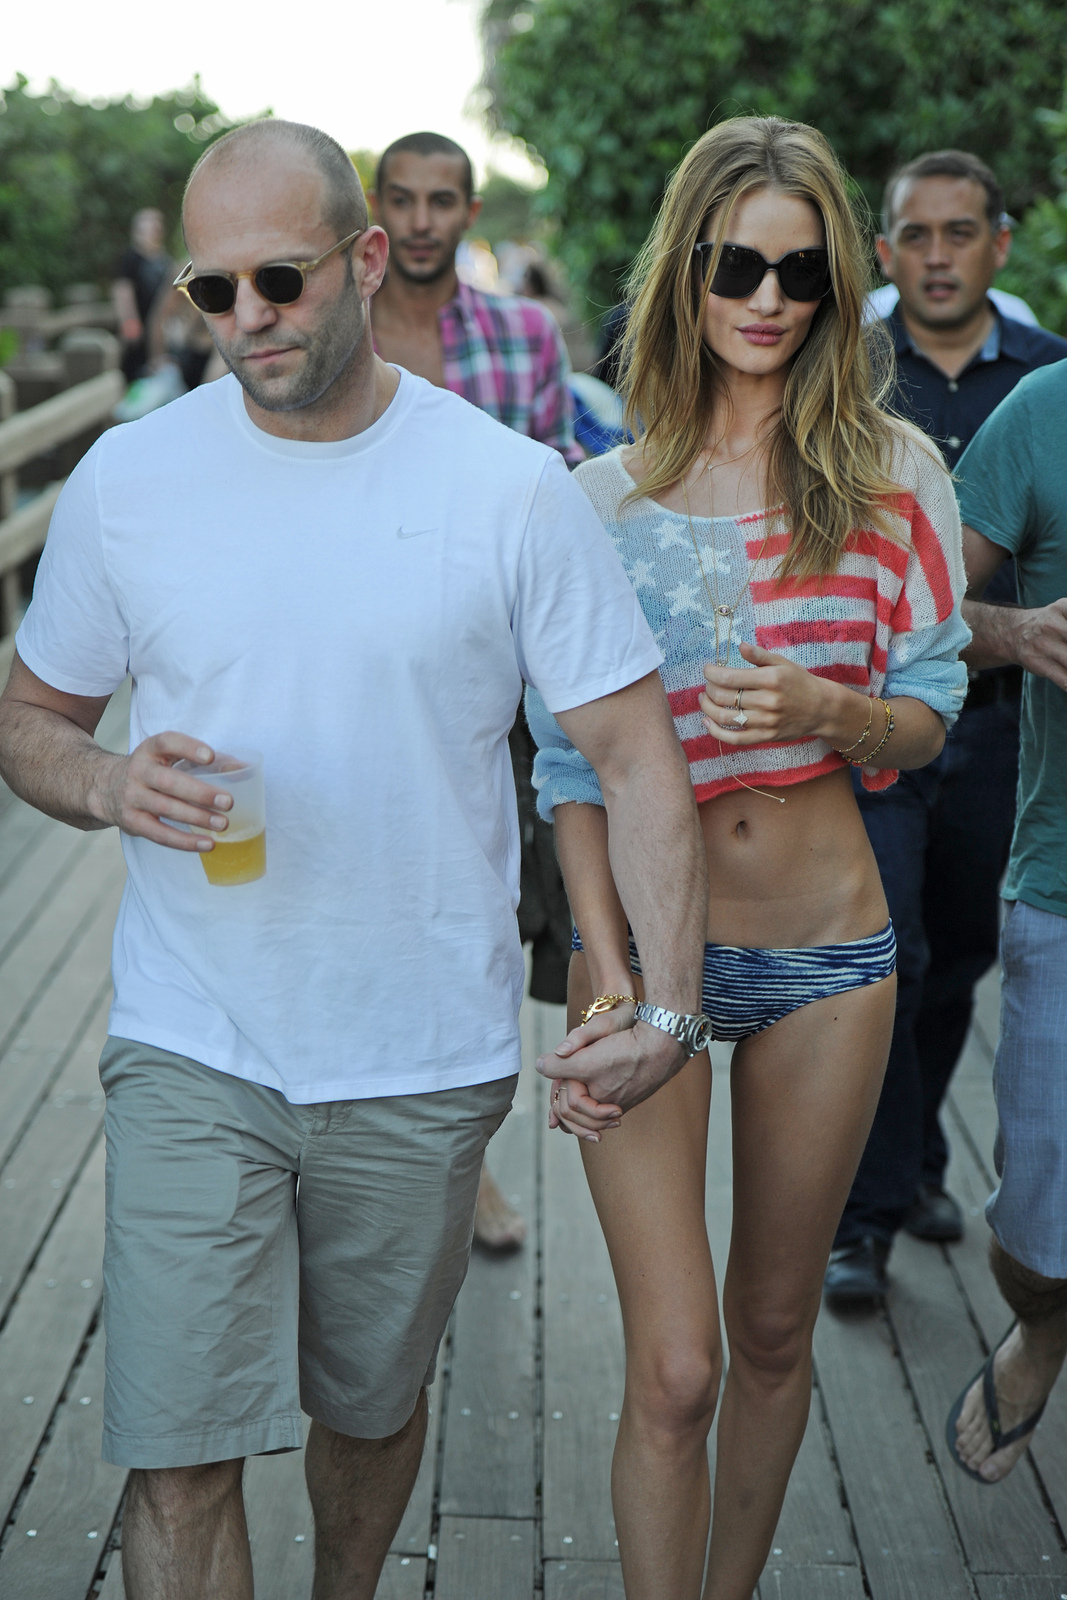 http://2.bp.blogspot.com/-jCVxaTMx7pc/TwXTV0Mb3zI/AAAAAAAAEu0/40MMaazCEDE/s1600/Rosie+Huntington-Whiteley+with+Jason+Statham+4.jpg